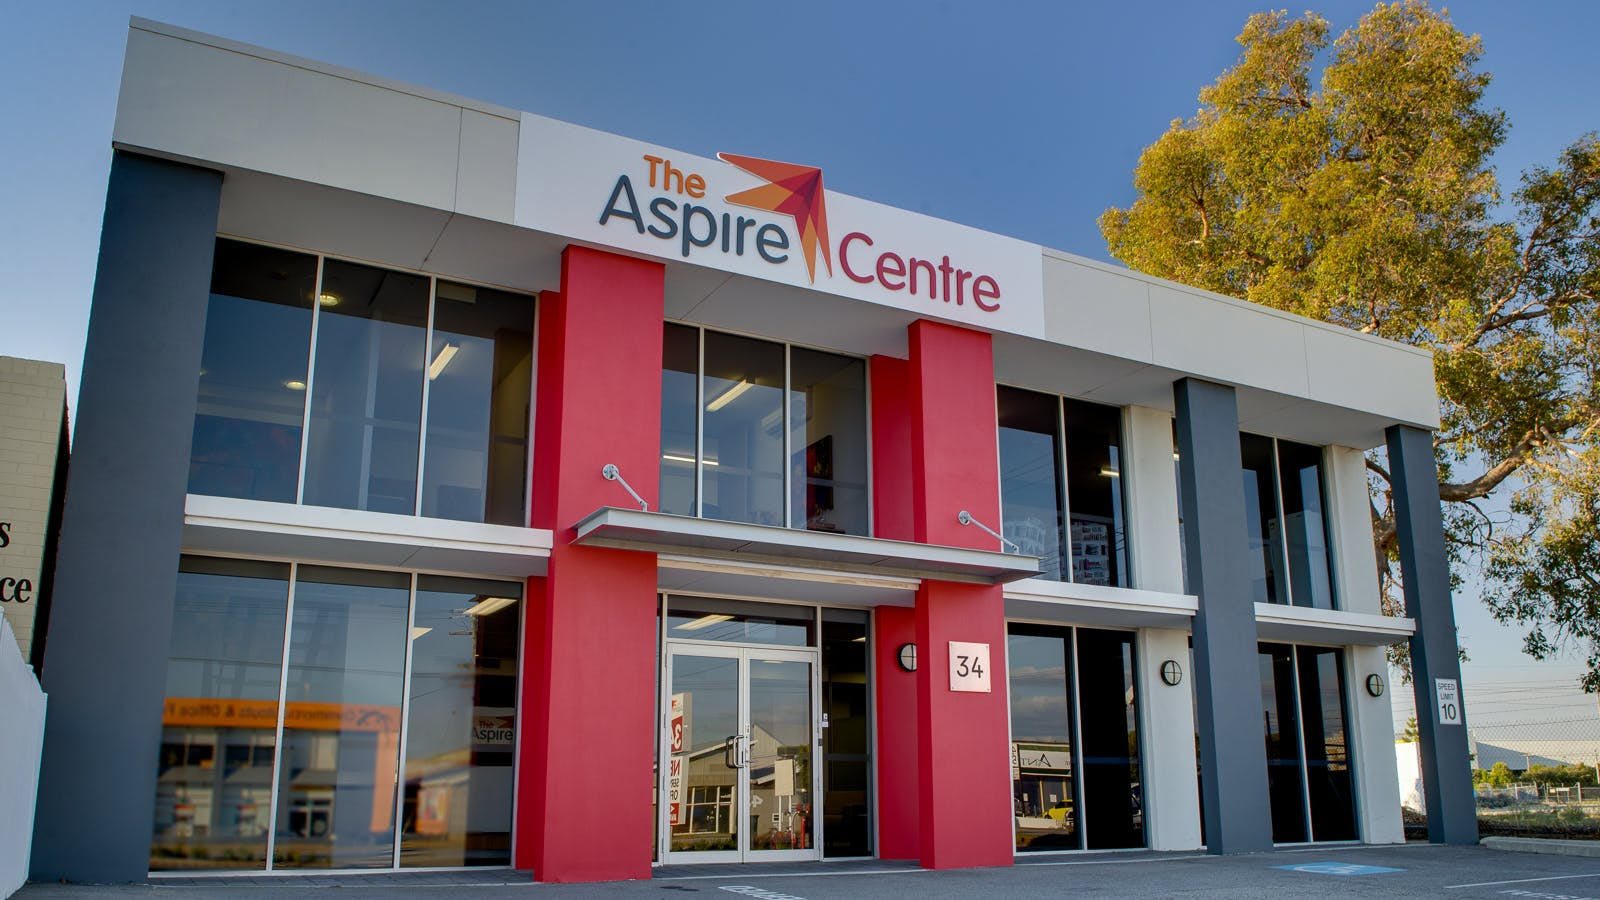 Casual Office Hire, private office at The Aspire Centre, image 9